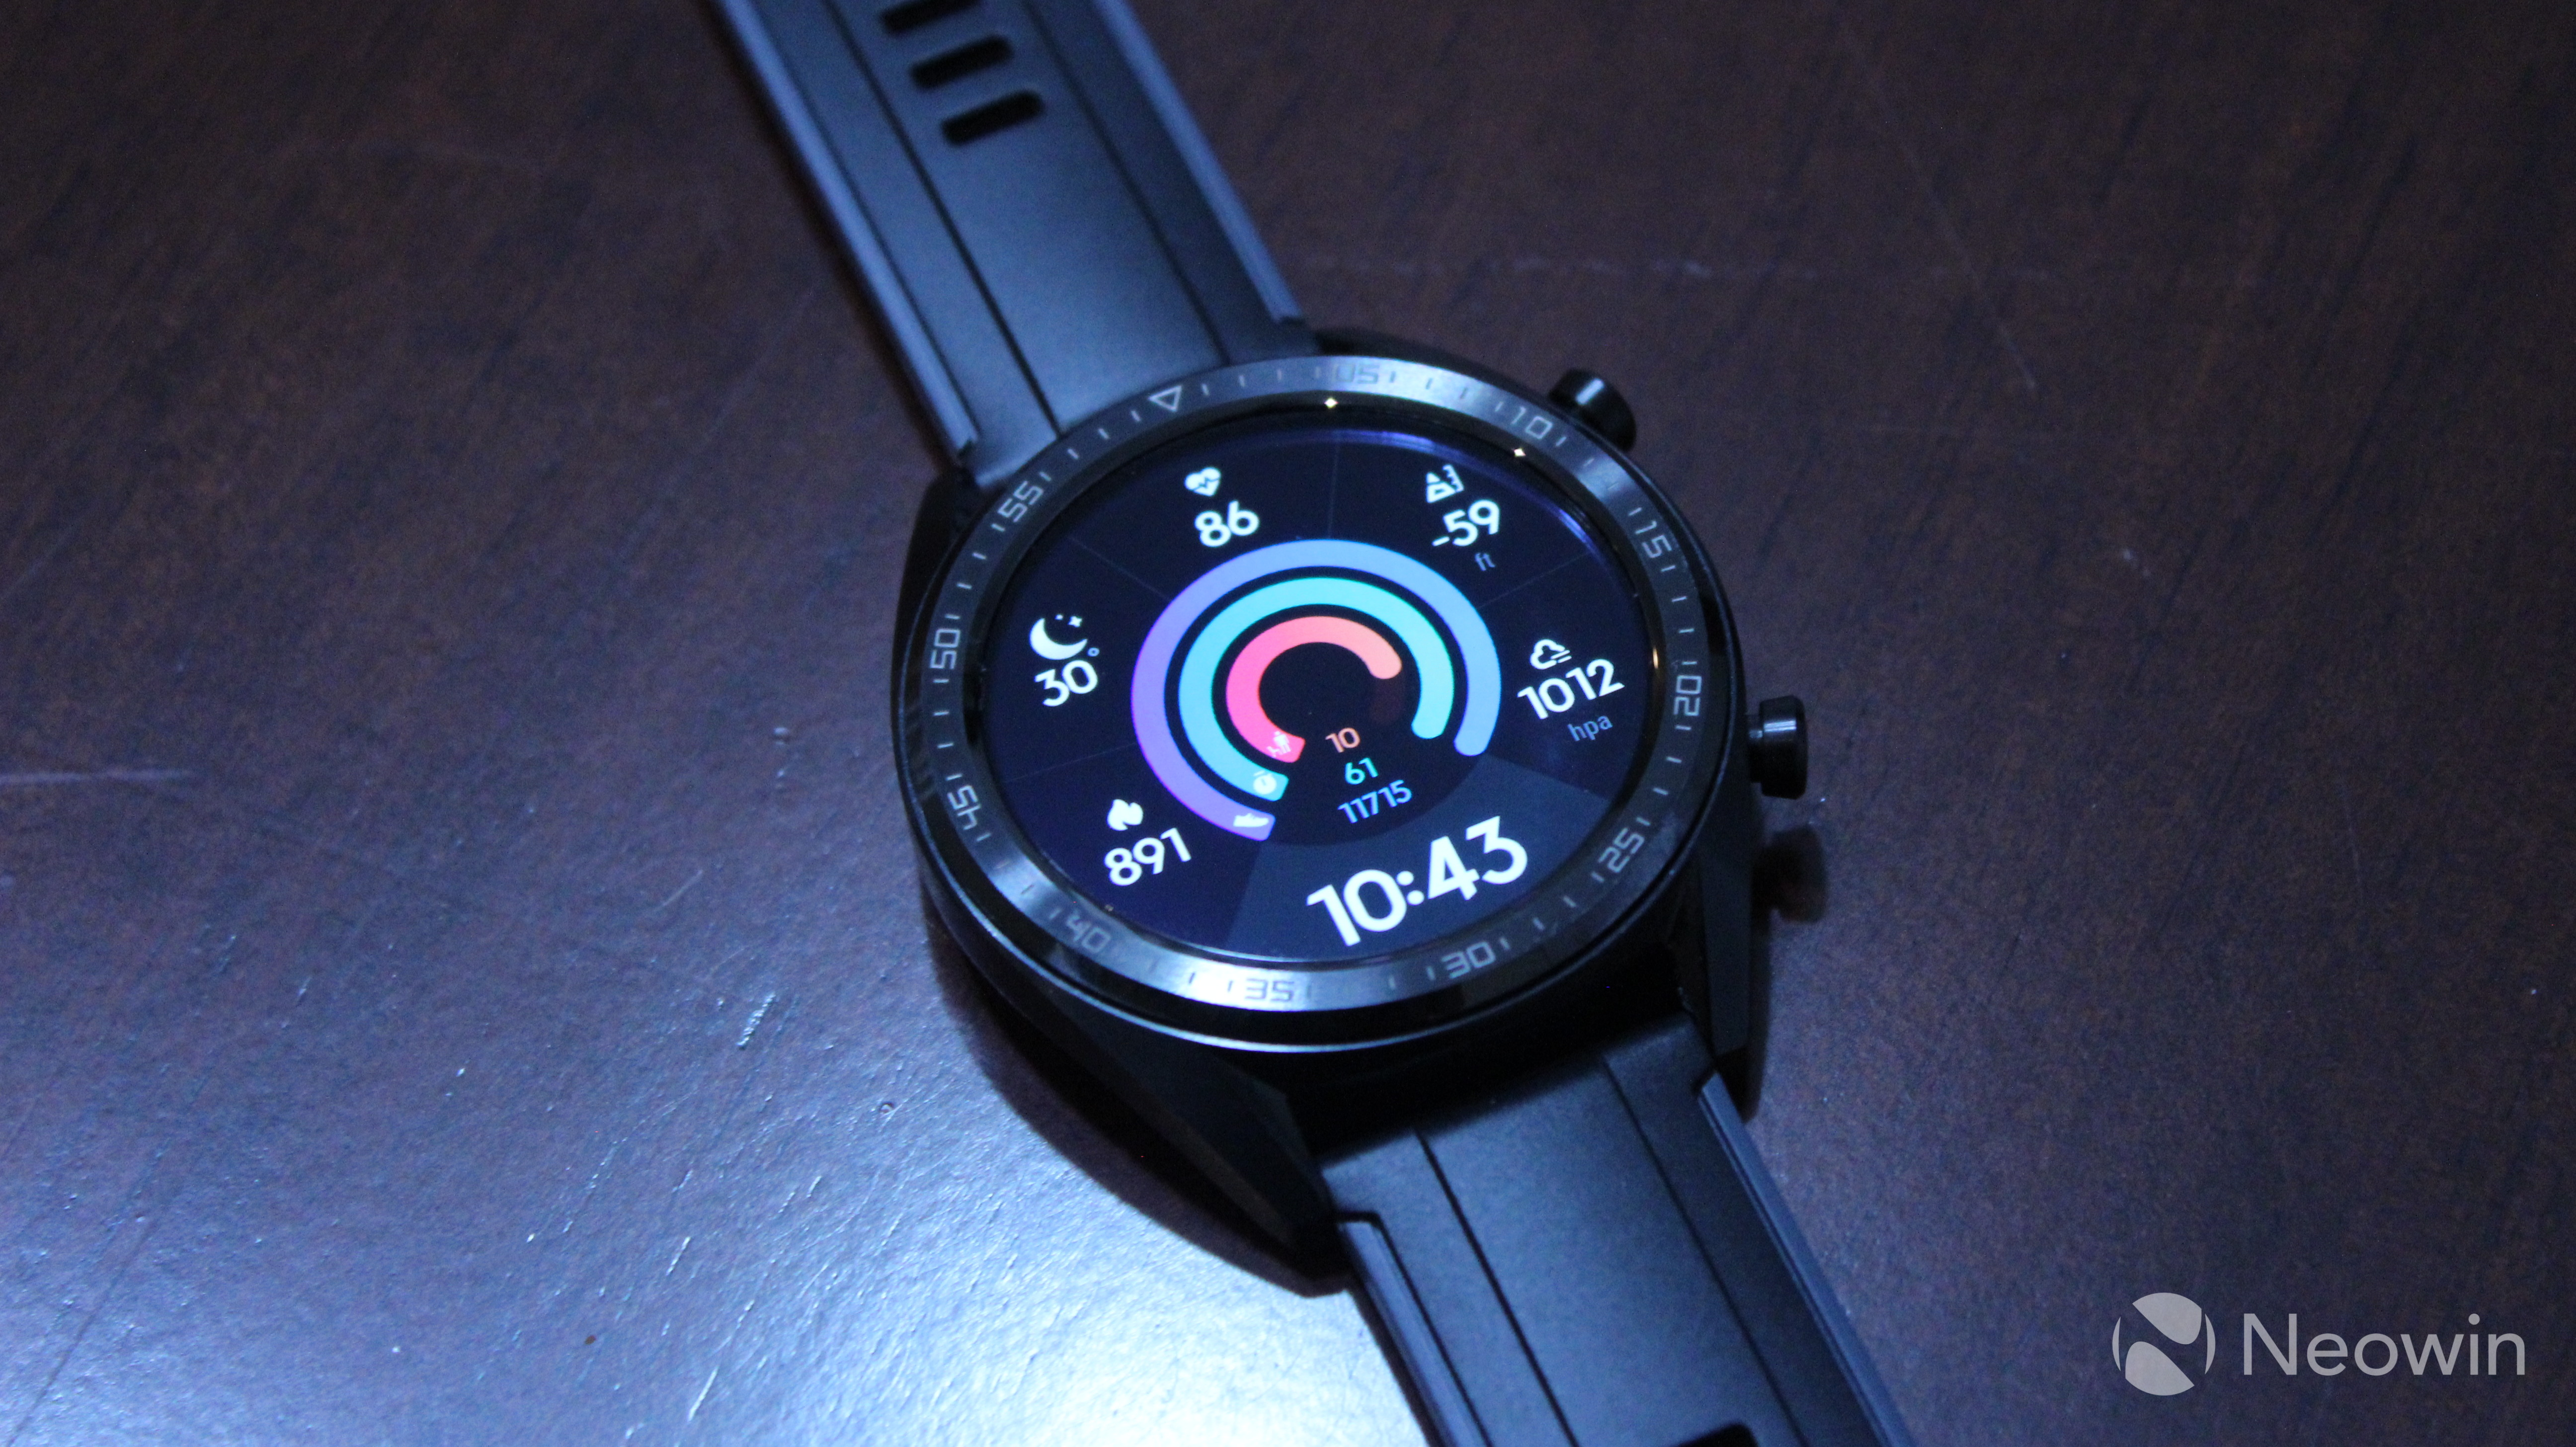 Huawei Watch GT review: Great battery life, but lacking on